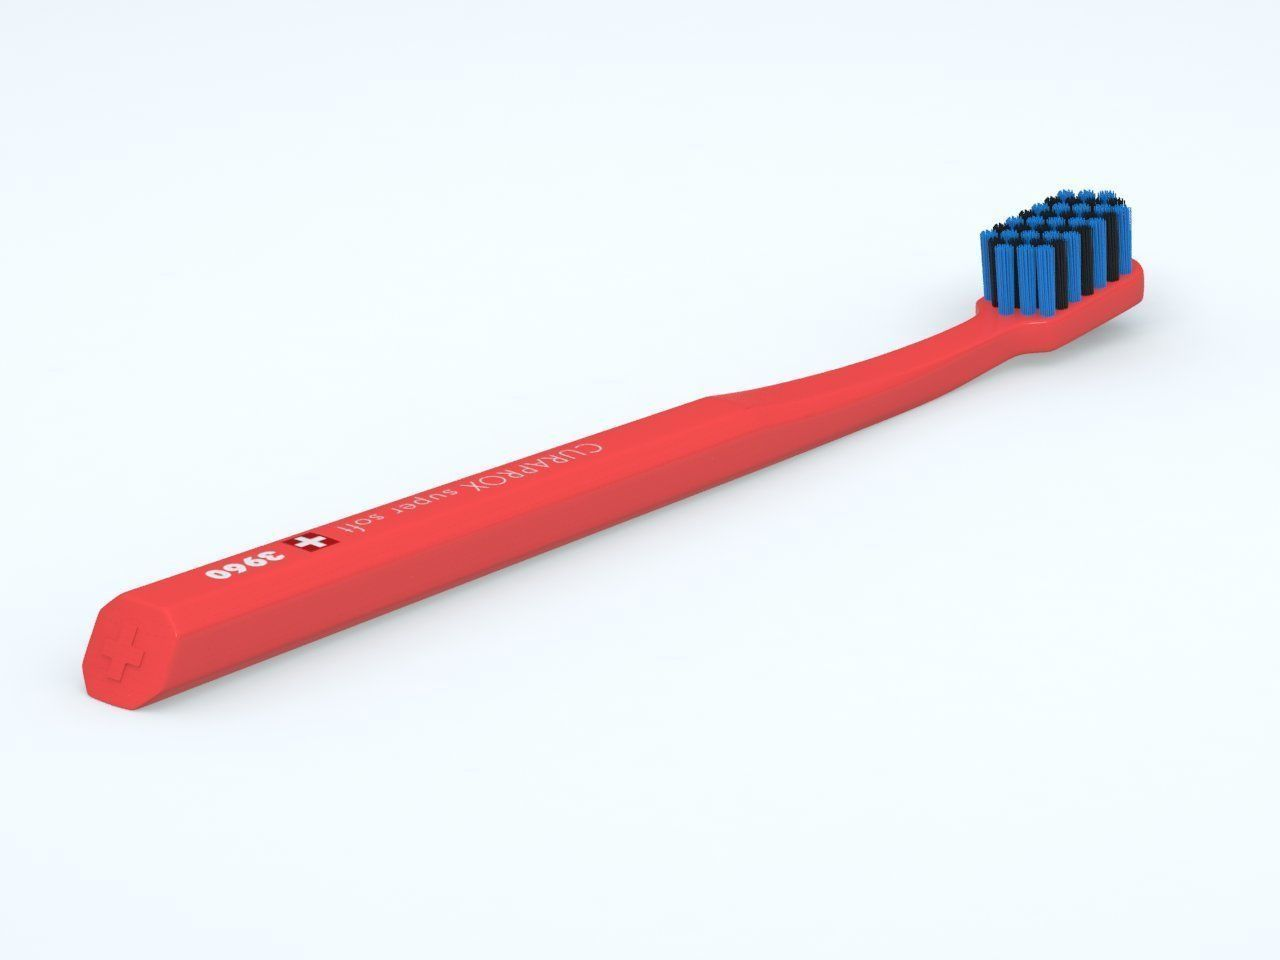 Curaprox super soft toothbrush